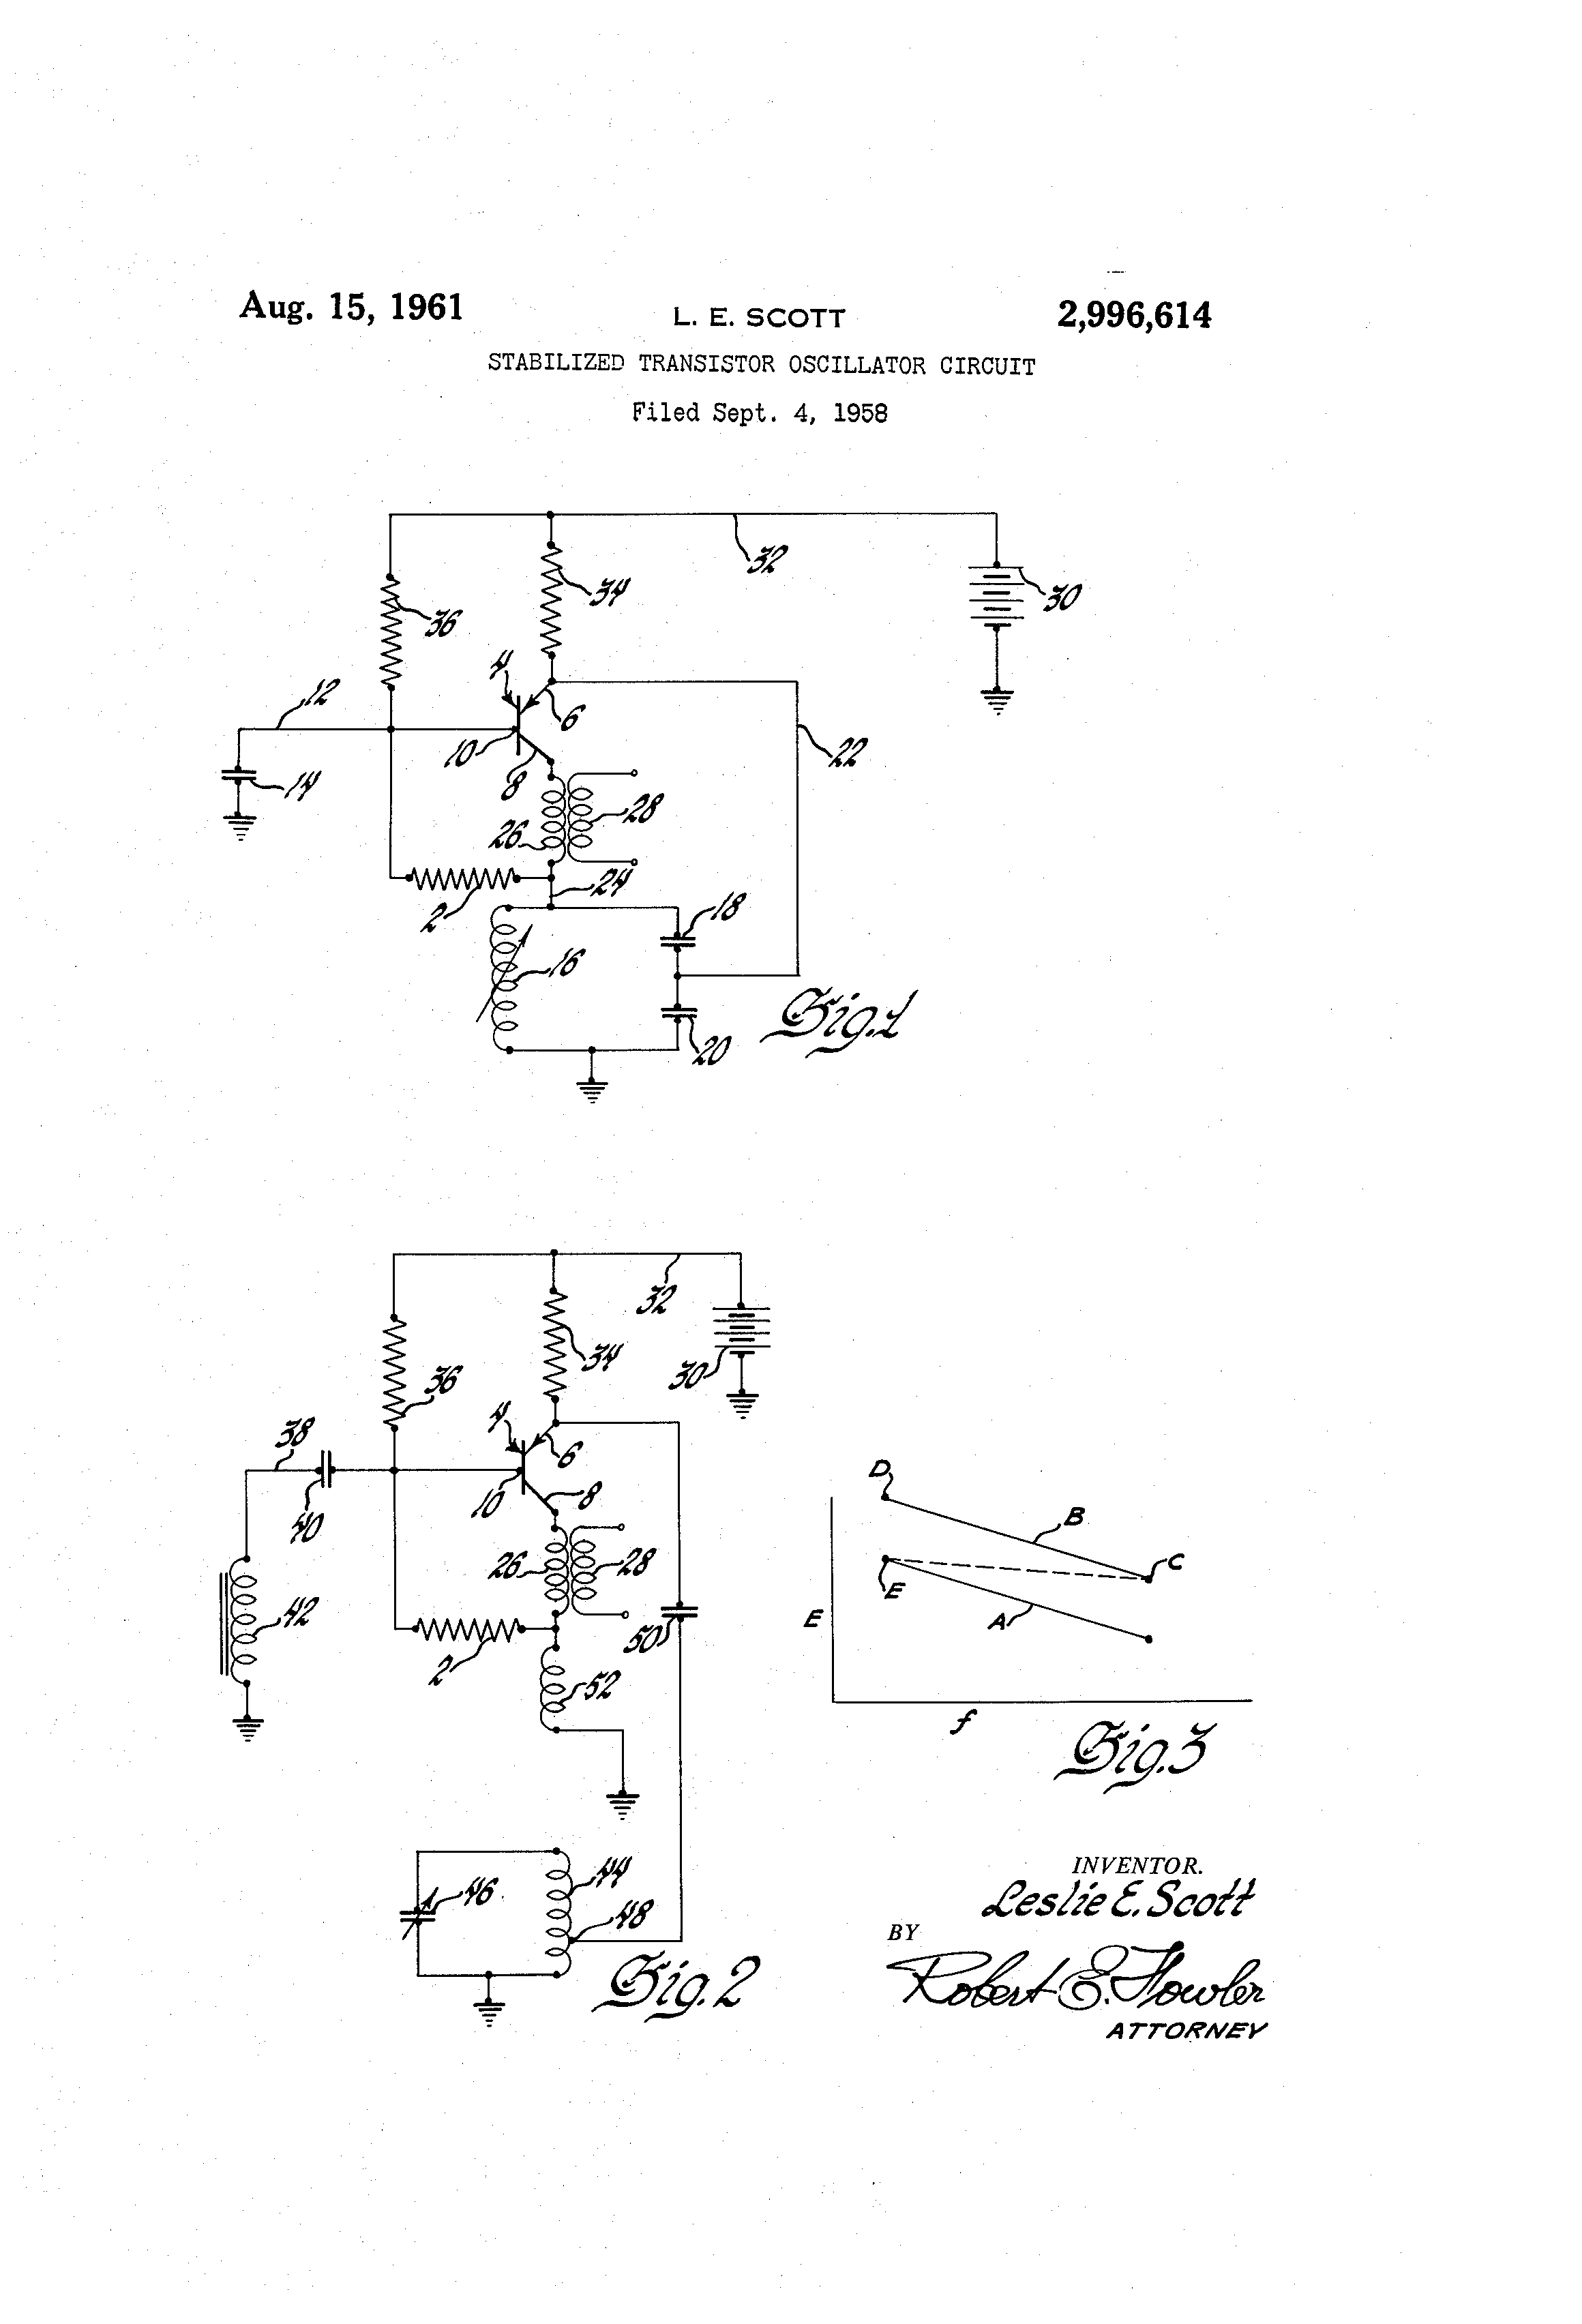 Transistor Oscillator Circuit Crystal Signalprocessing Diagram Seekiccom Patent Us Stabilized Google 2320x3408